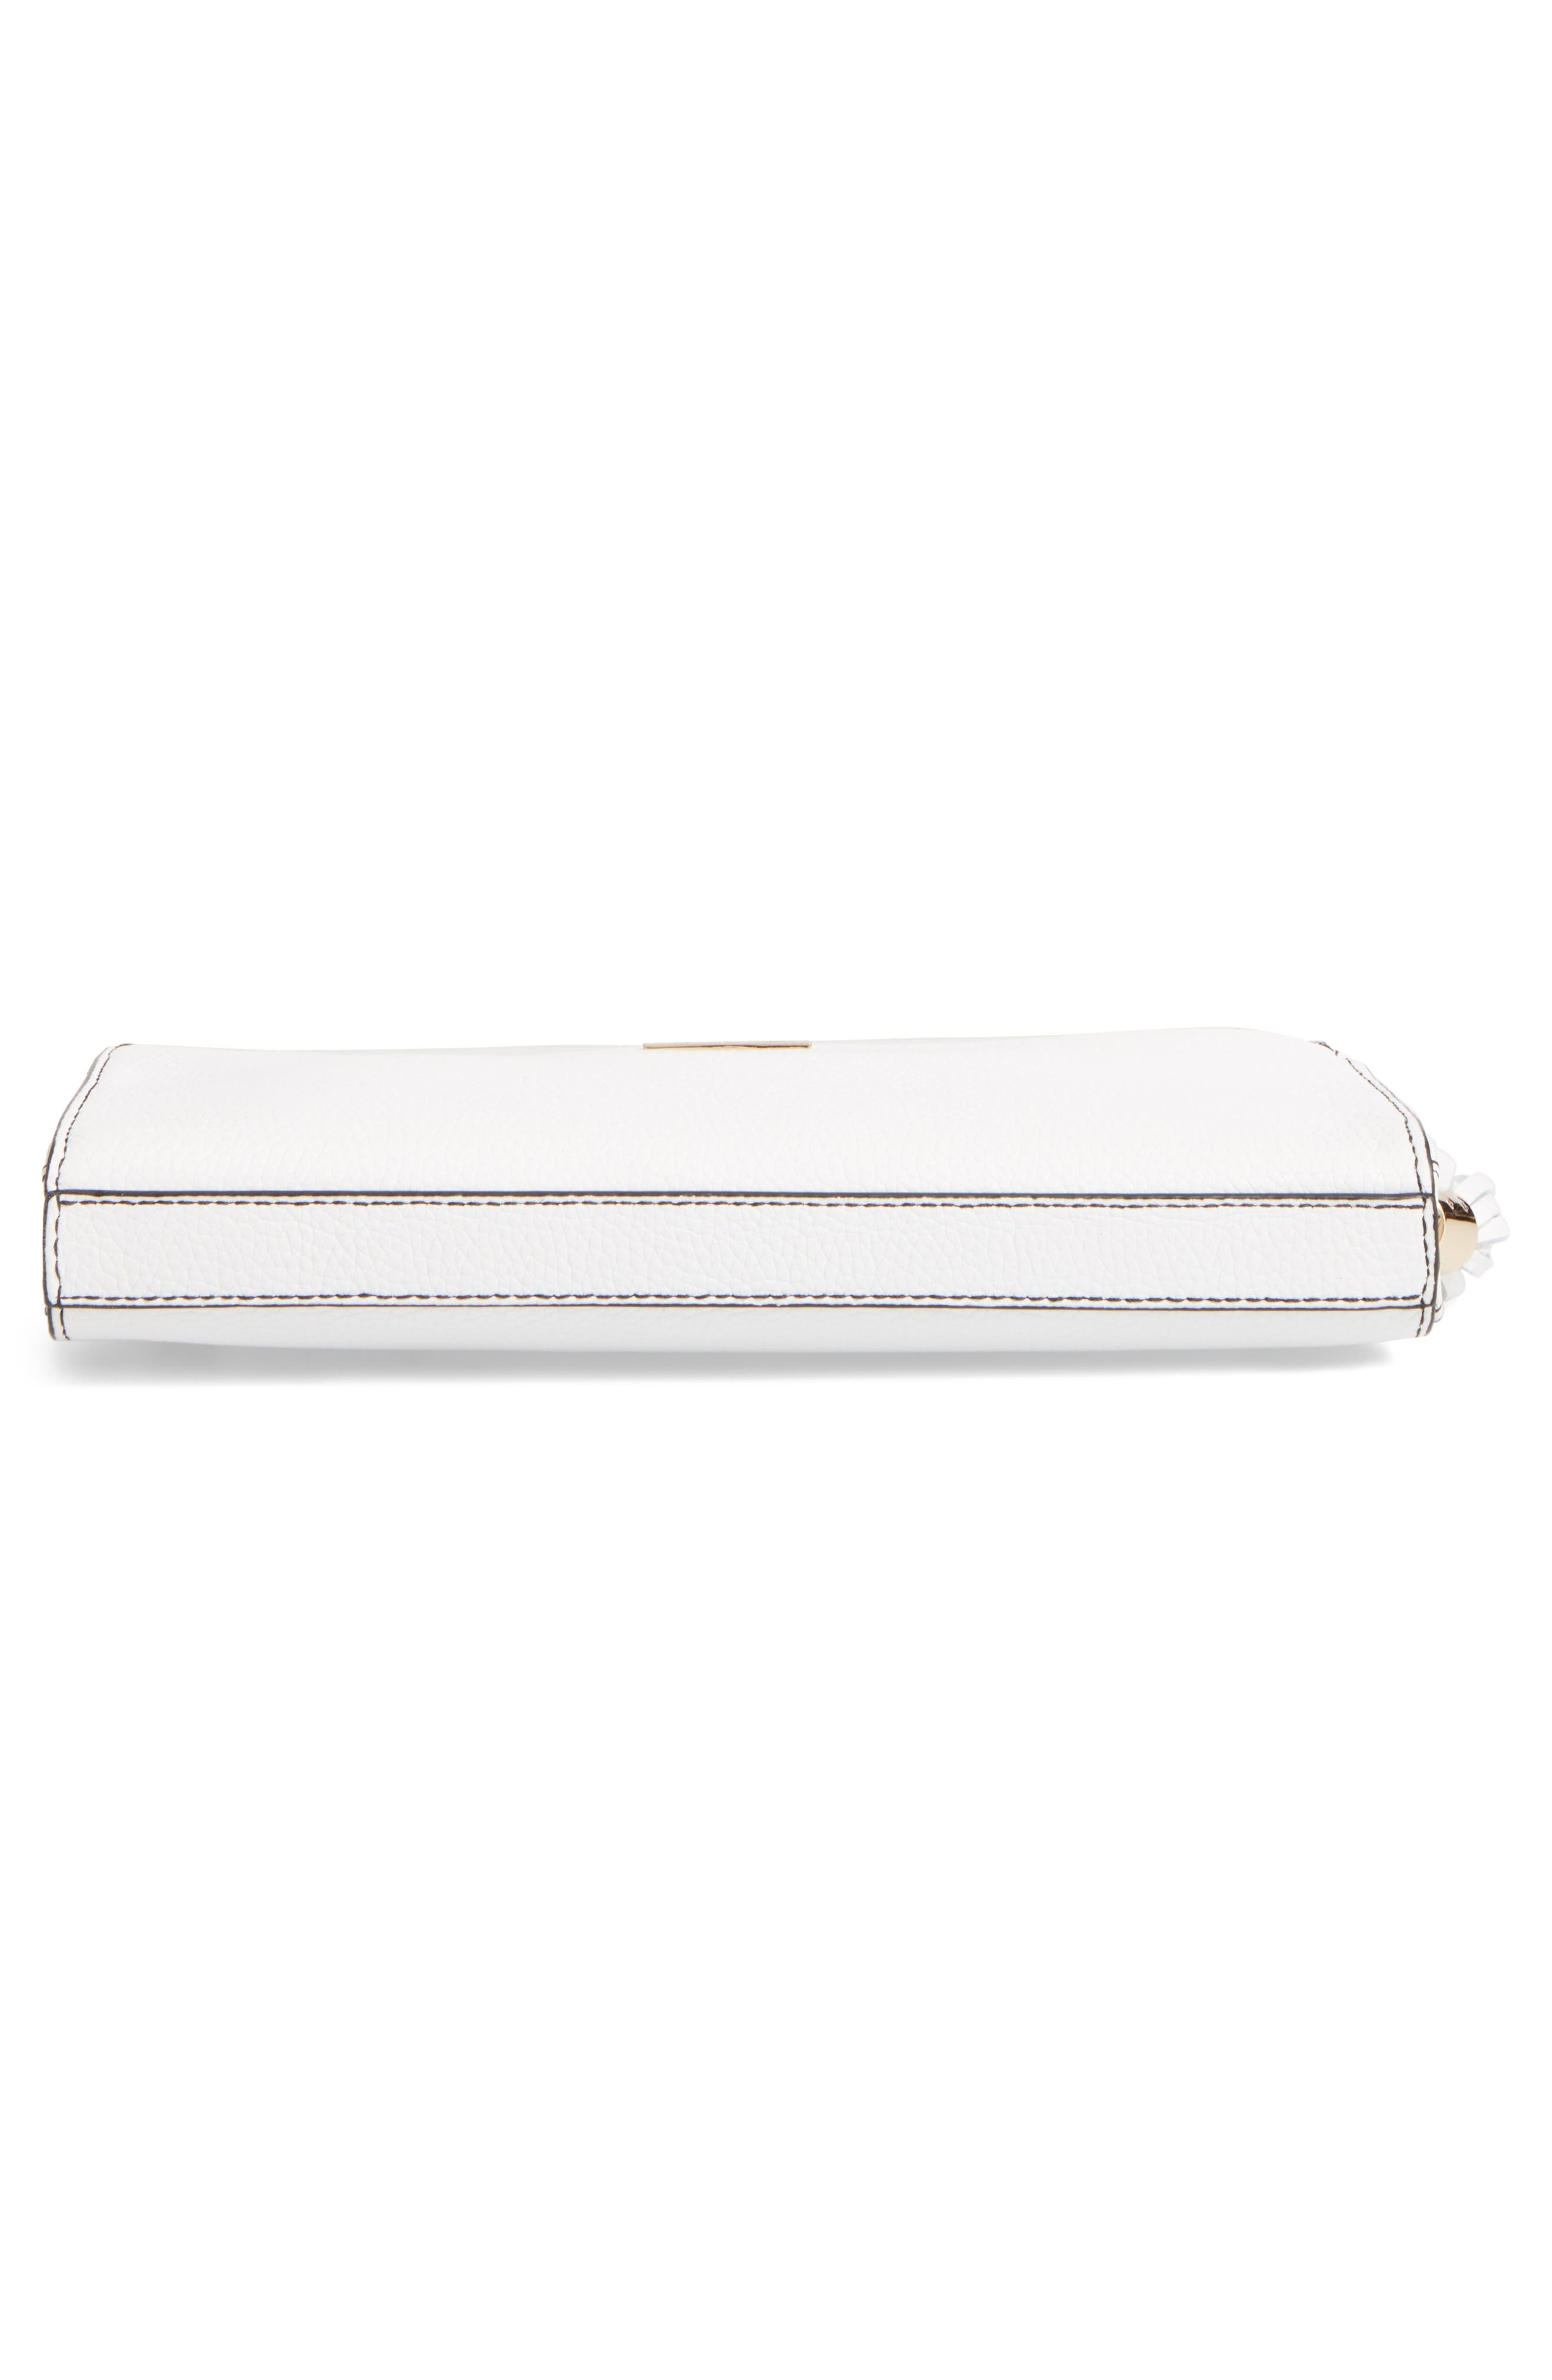 Astor Leather Clutch,                             Alternate thumbnail 6, color,                             White